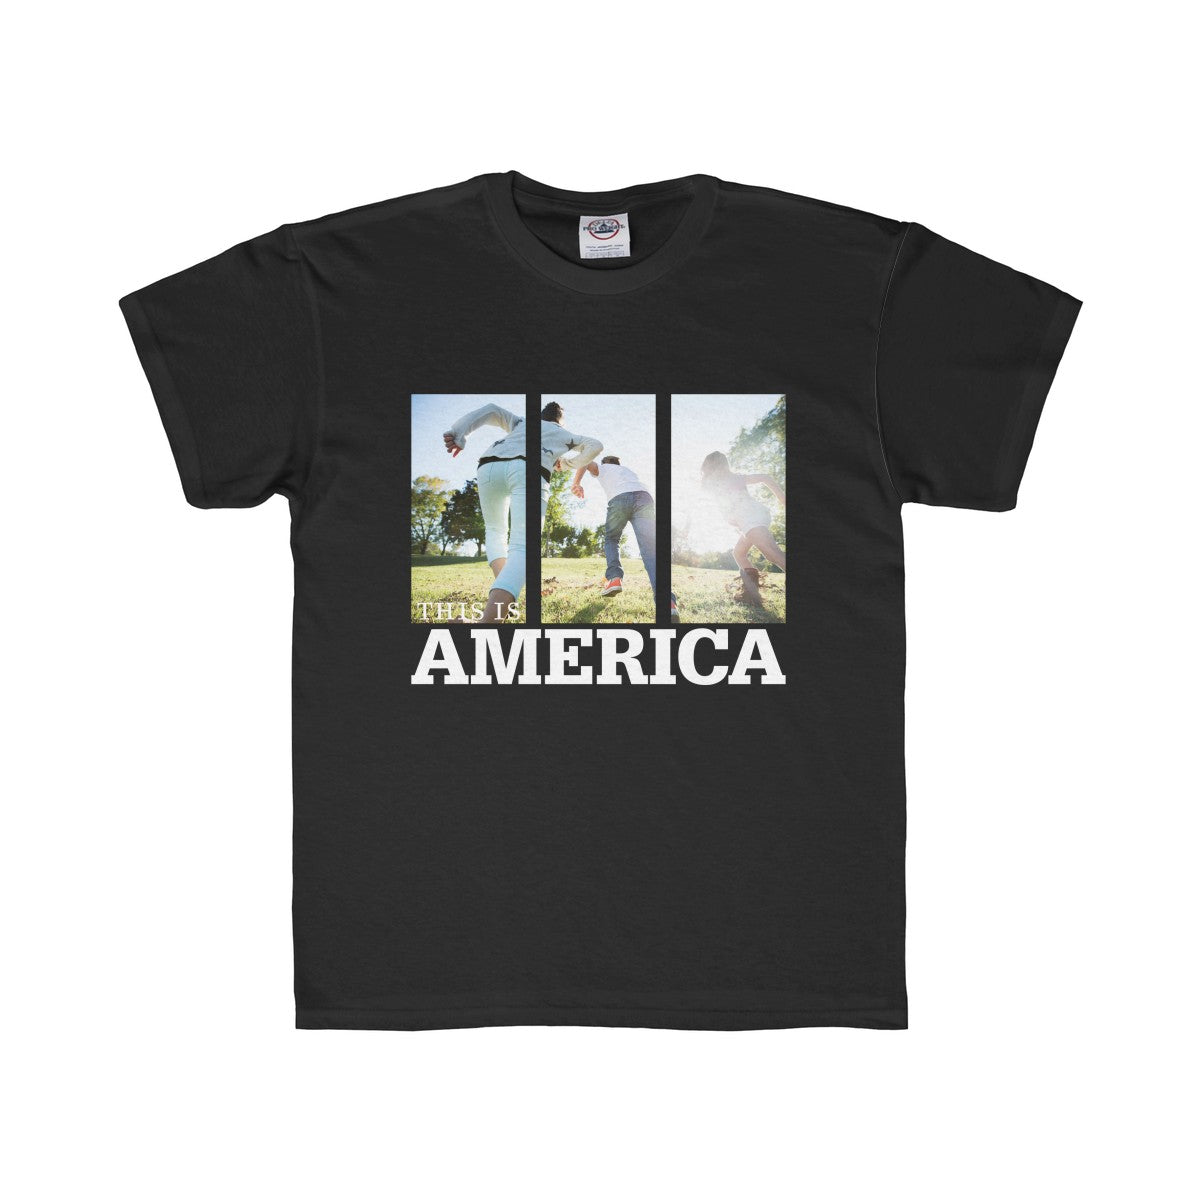 This is America - Children Running Kids Regular Fit Tee, Kids clothes - PureDesignTees